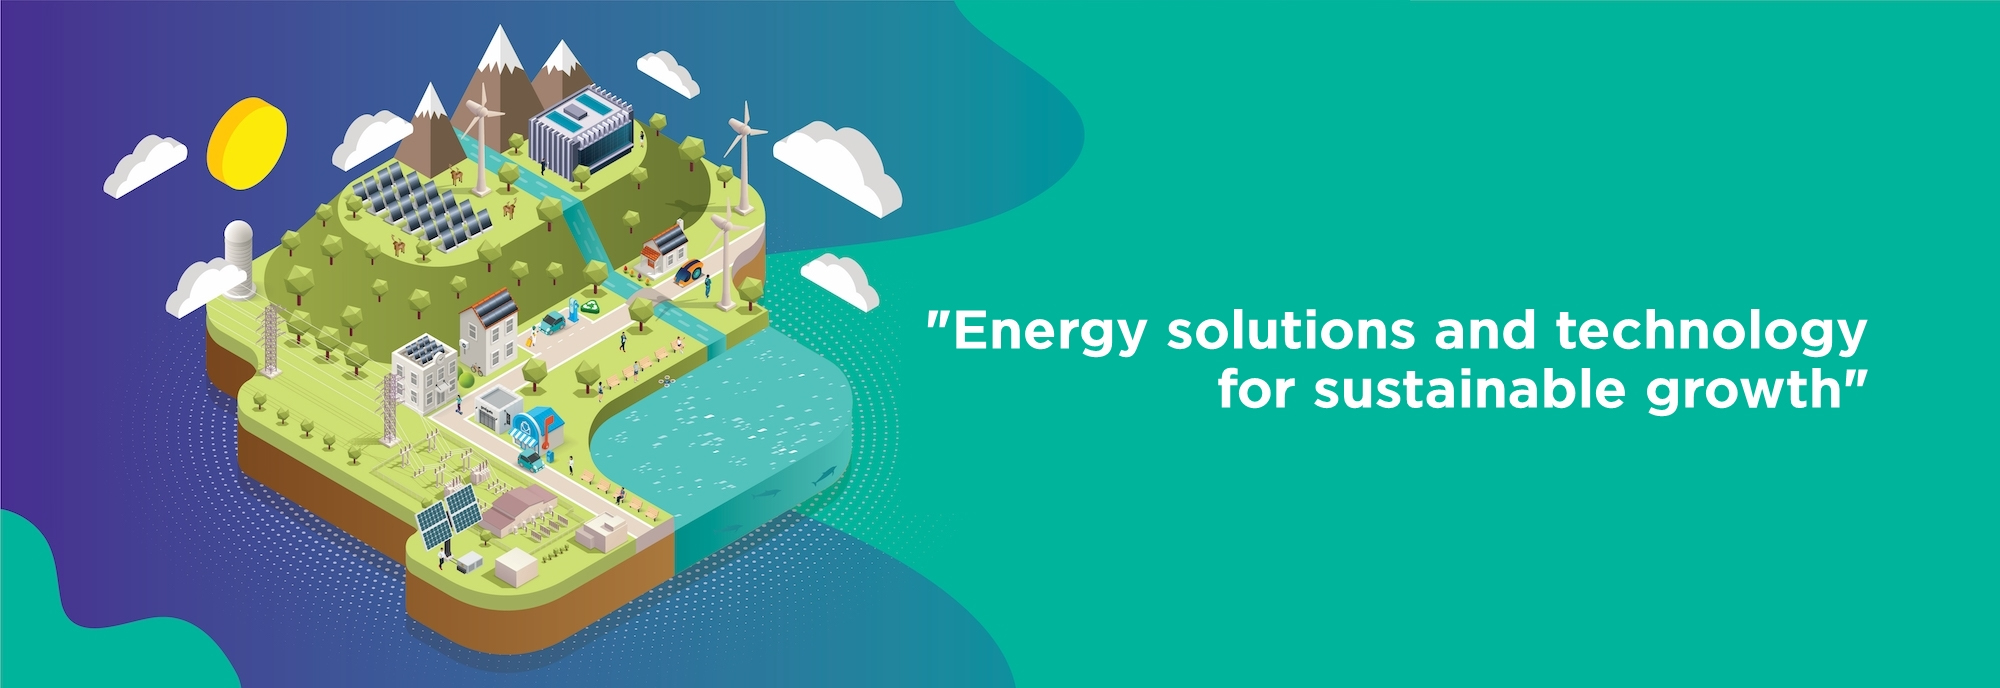 Energy solutions and technology for sustainable growth